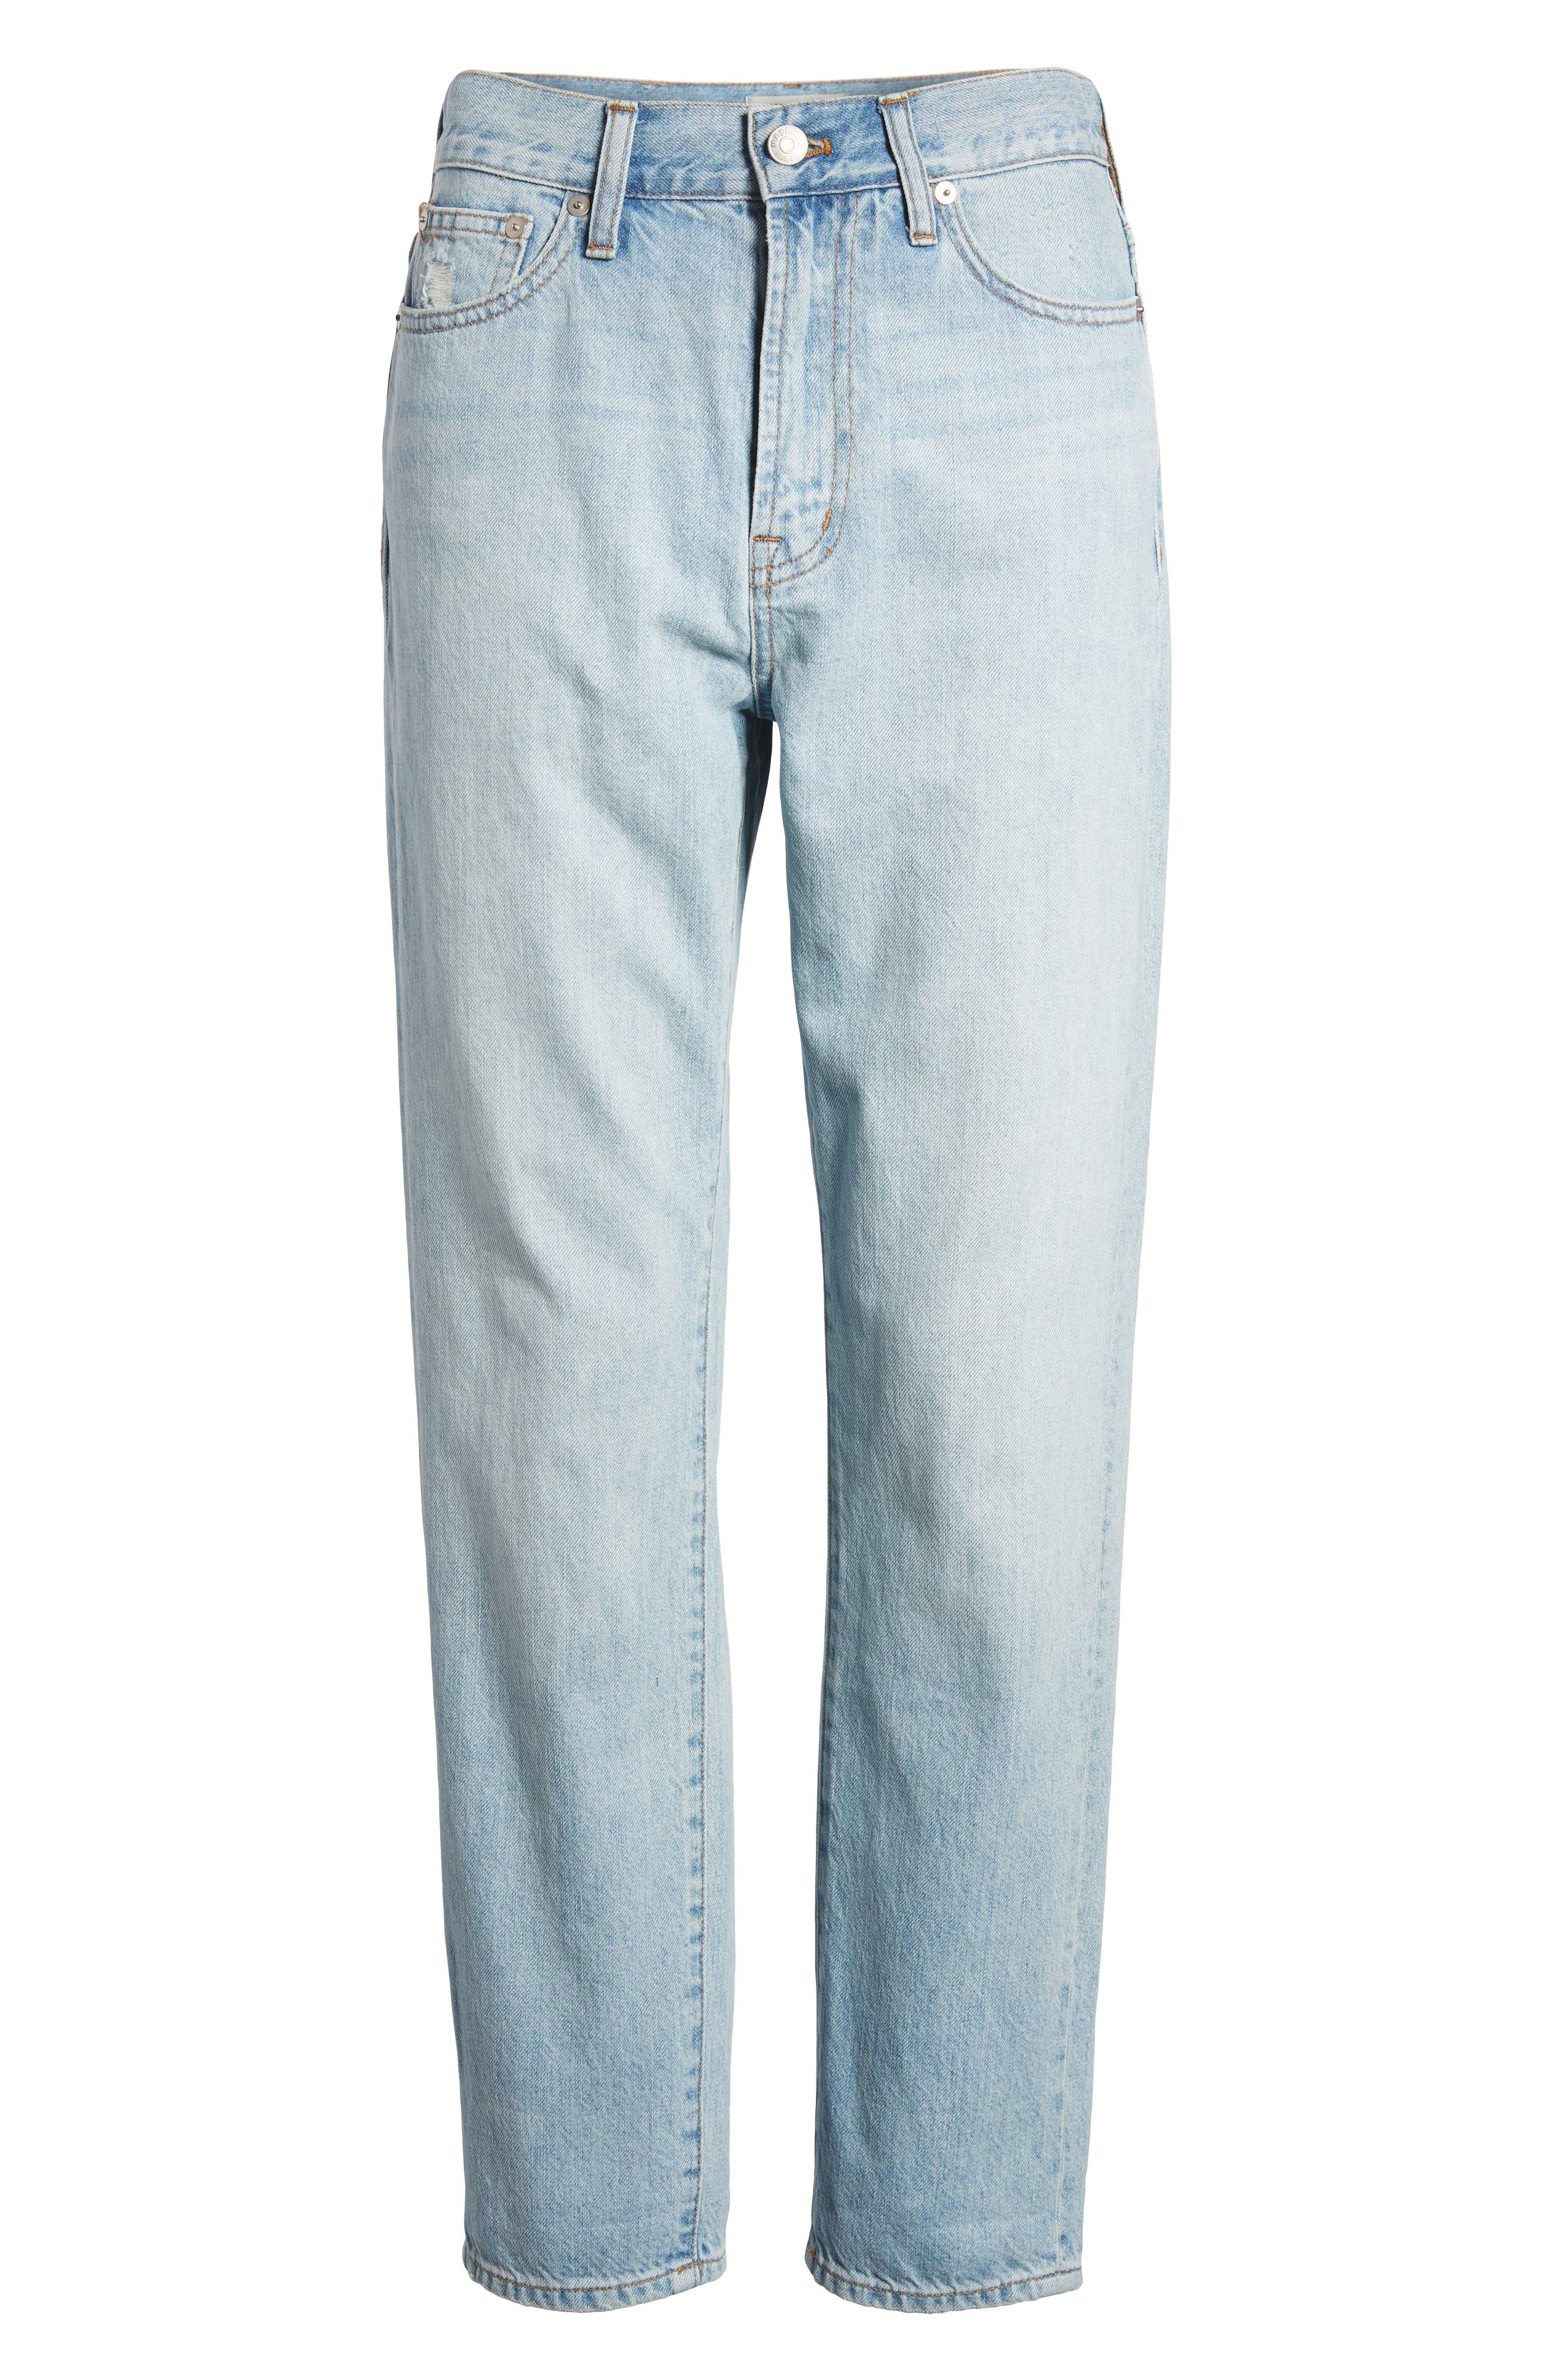 'Perfect Summer' High Rise Ankle Jeans,                             Alternate thumbnail 10, color,                             FITZGERALD WASH